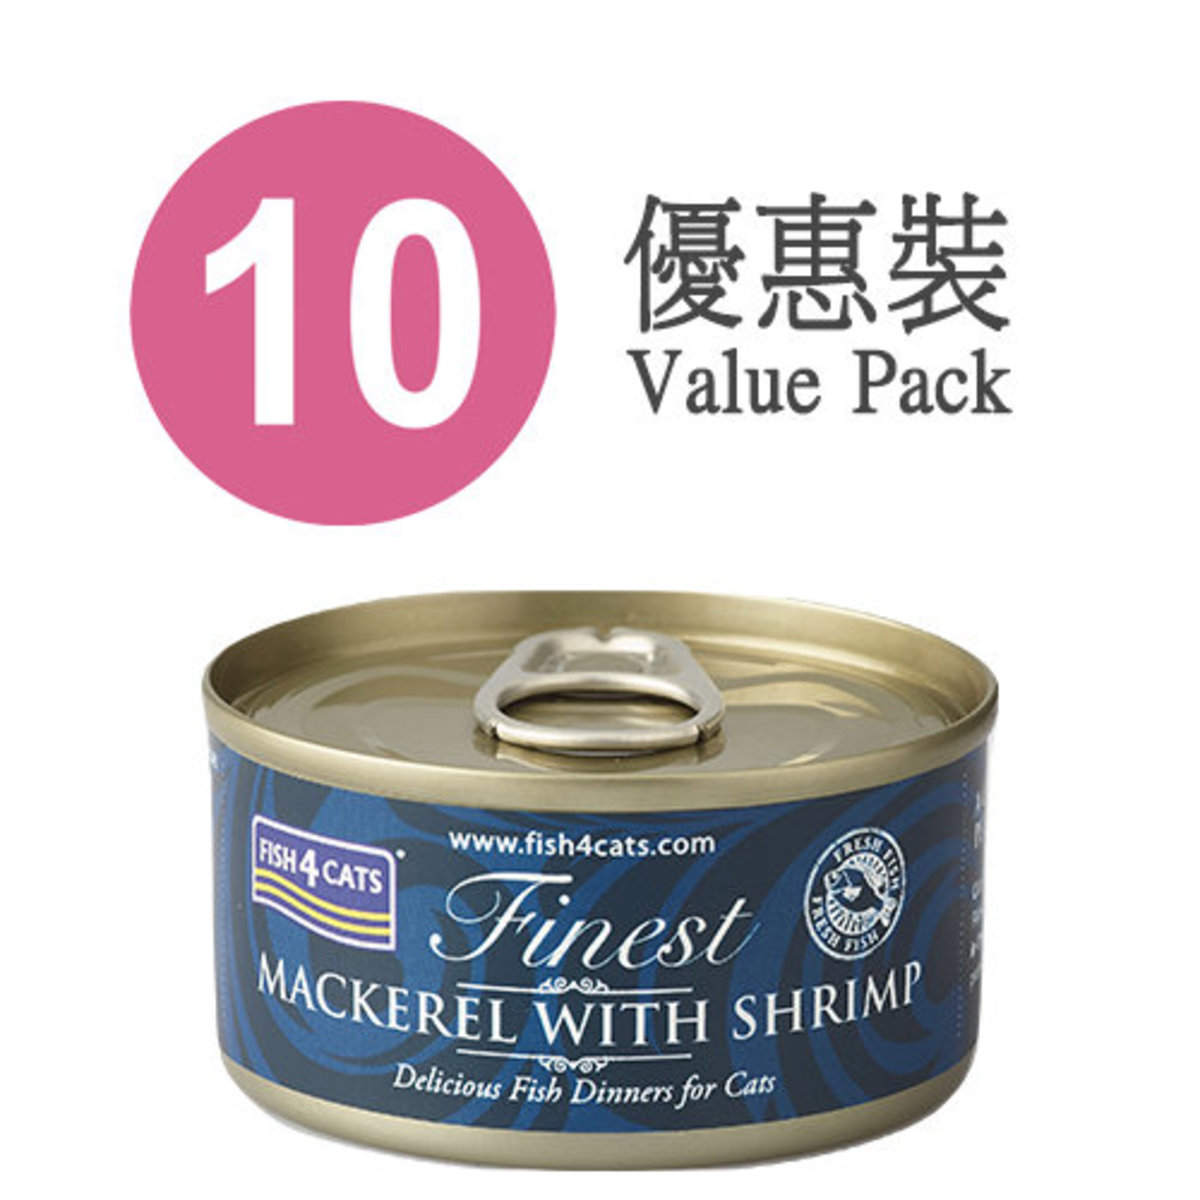 Fineset Mackerel with Shrimp Cat Tins (70g x 10) #CMW873_10